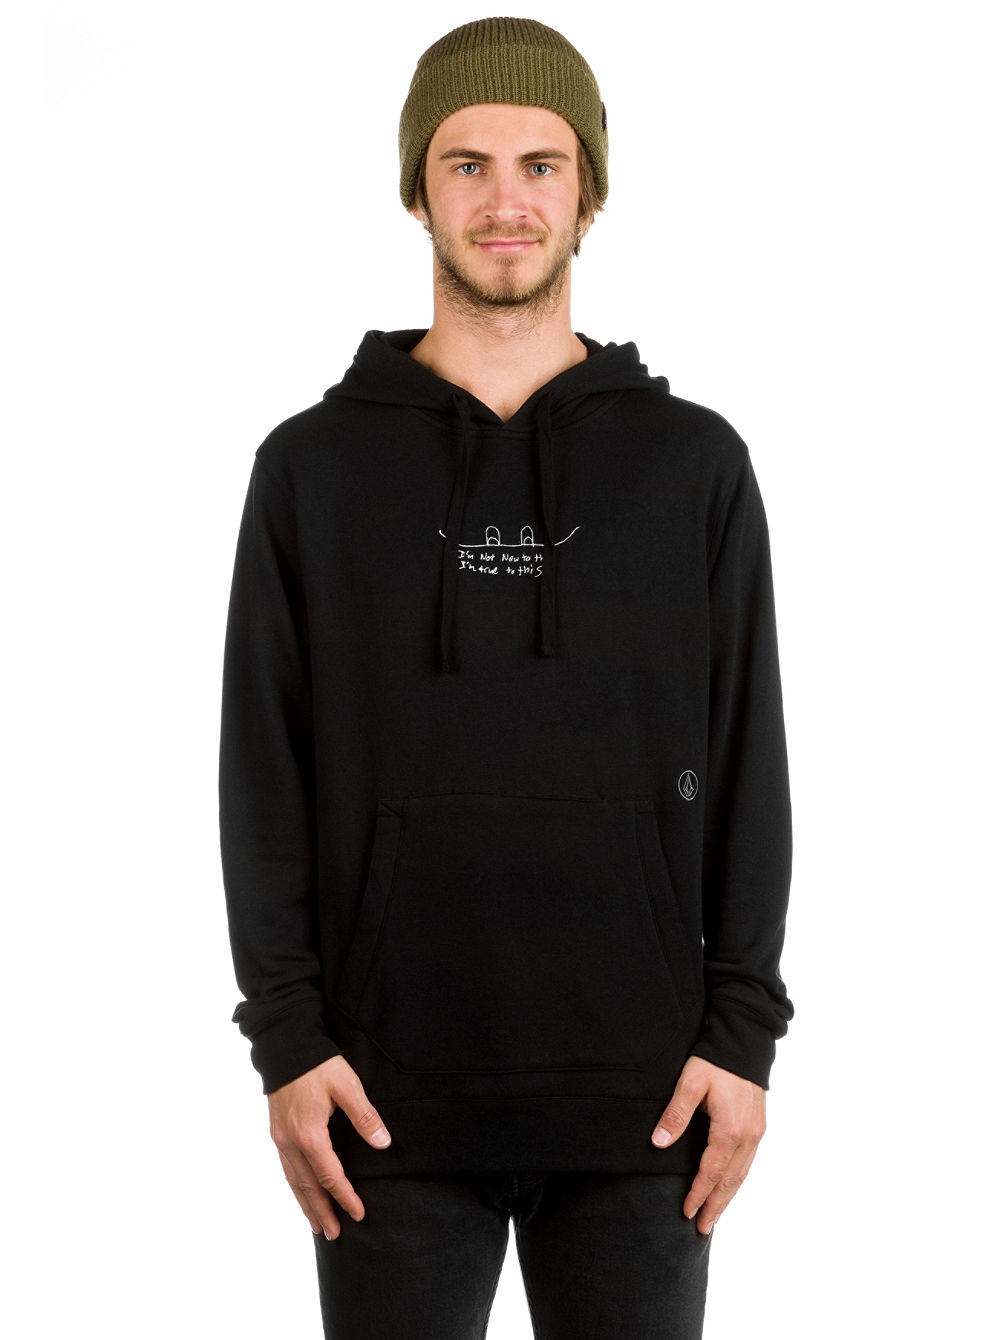 JLA Fleece Pullover